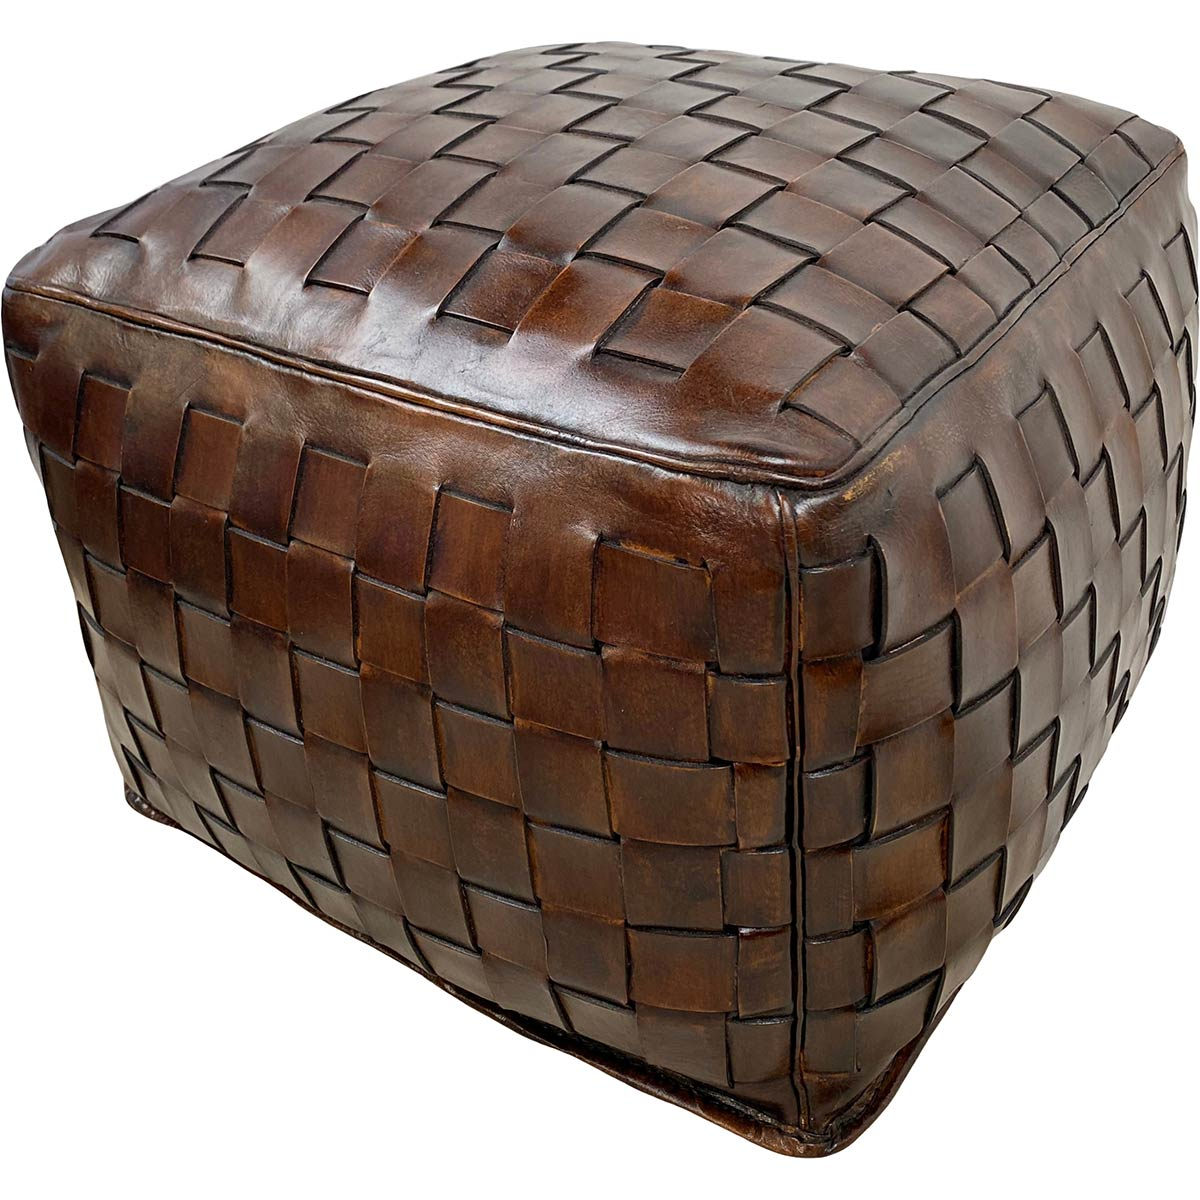 Large Square Braided Ottoman - Antique Brown